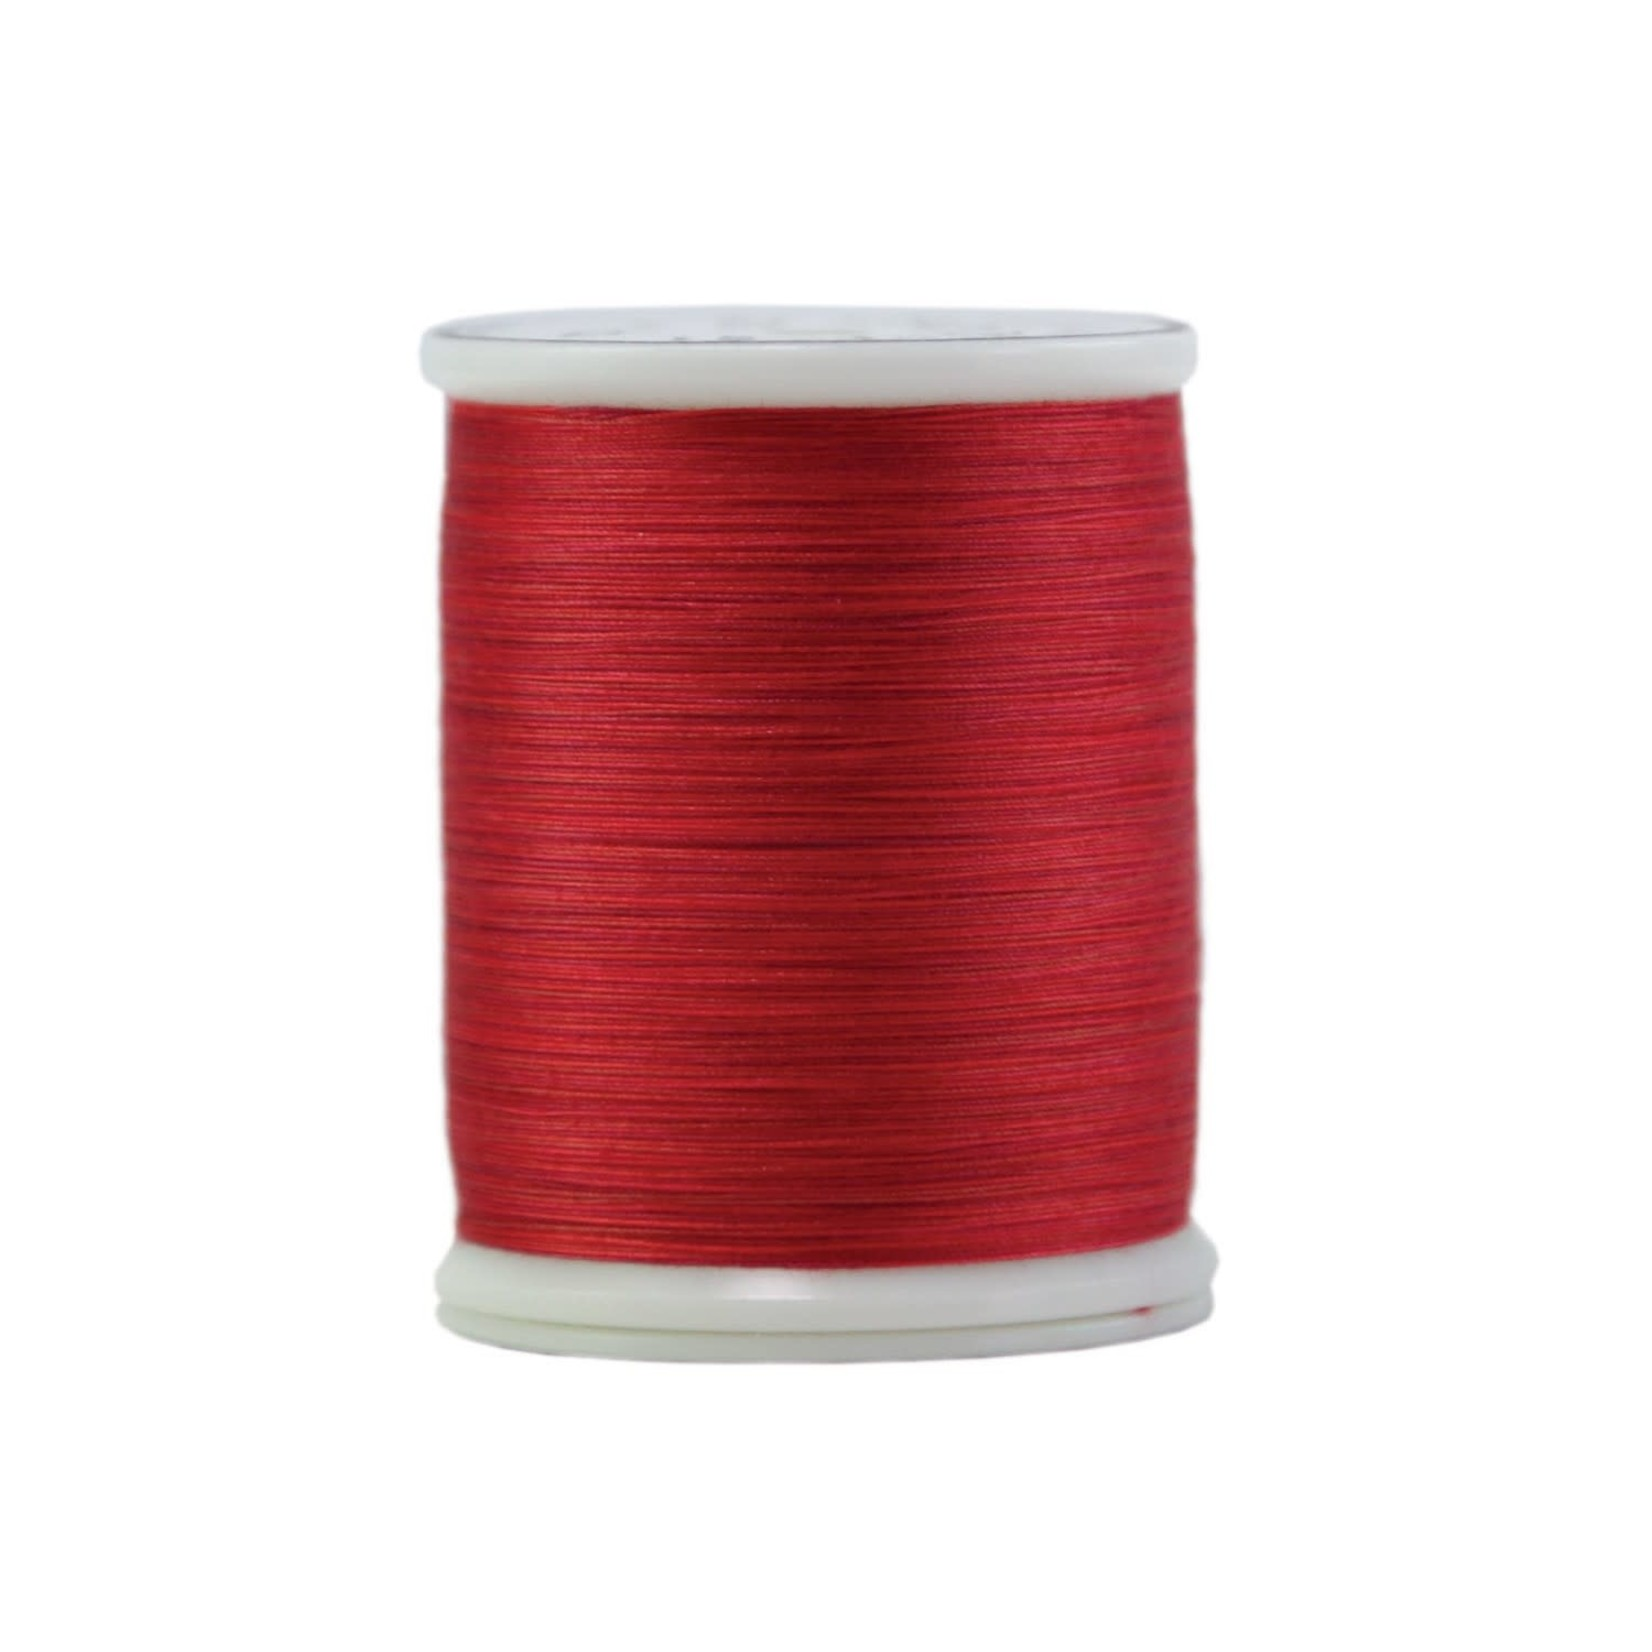 Superior Threads King Tut - #40 - 457 m - 1053 Lady in Red